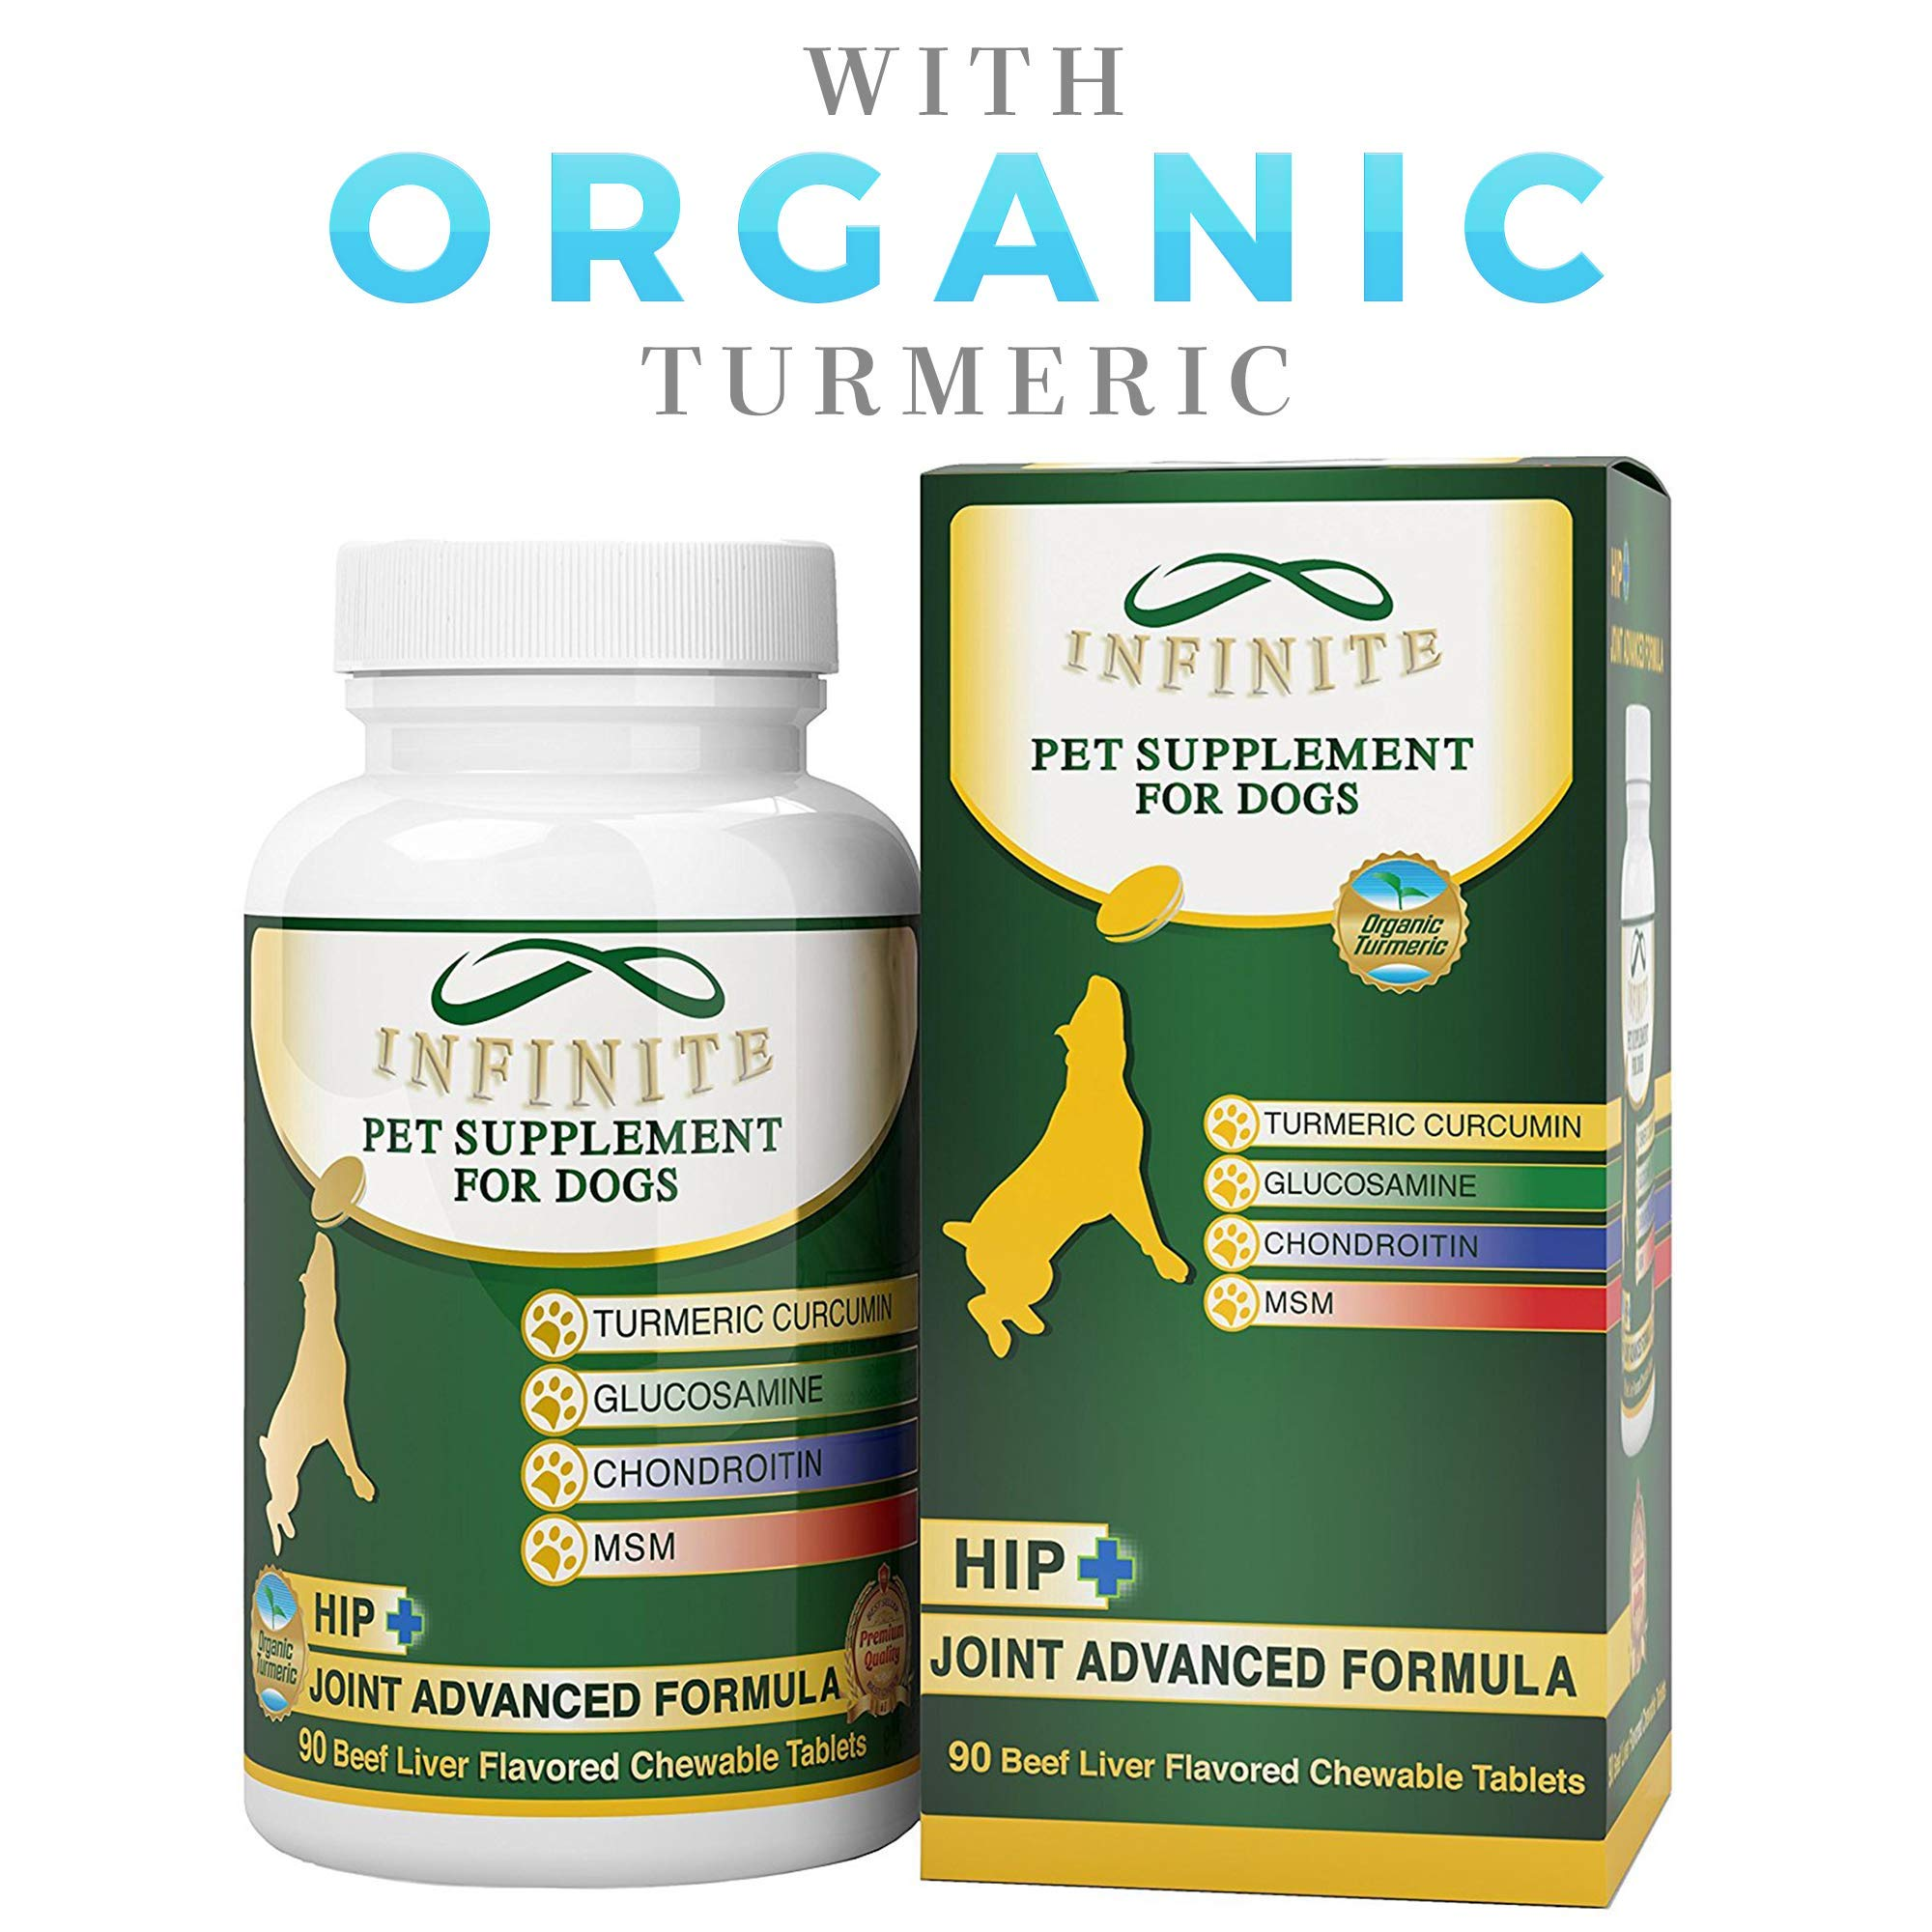 All-Natural Hip & Joint Supplement for Dogs - with Glucosamine, Chondroitin, MSM, and Organic Turmeric - Improves Mobility and Eases Discomfort Best for Large & Small Dog - 90 Chewable Treats by Infinite Pet Supplements